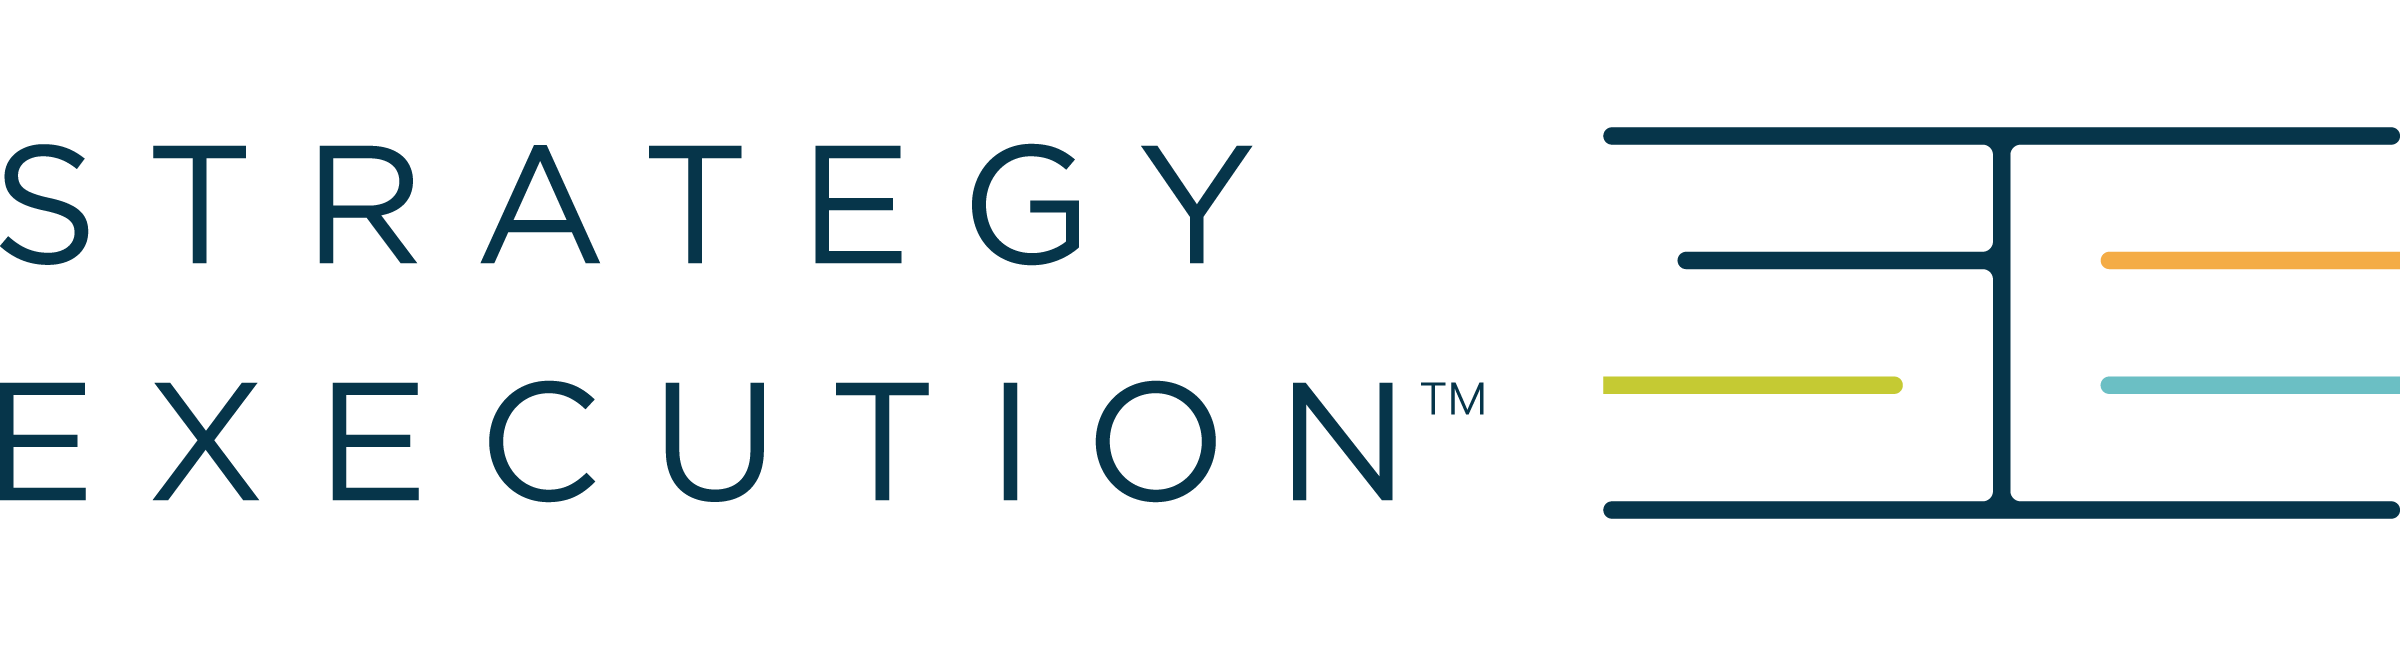 Strategy Execution, Inc. (a Twenty Eighty Company)